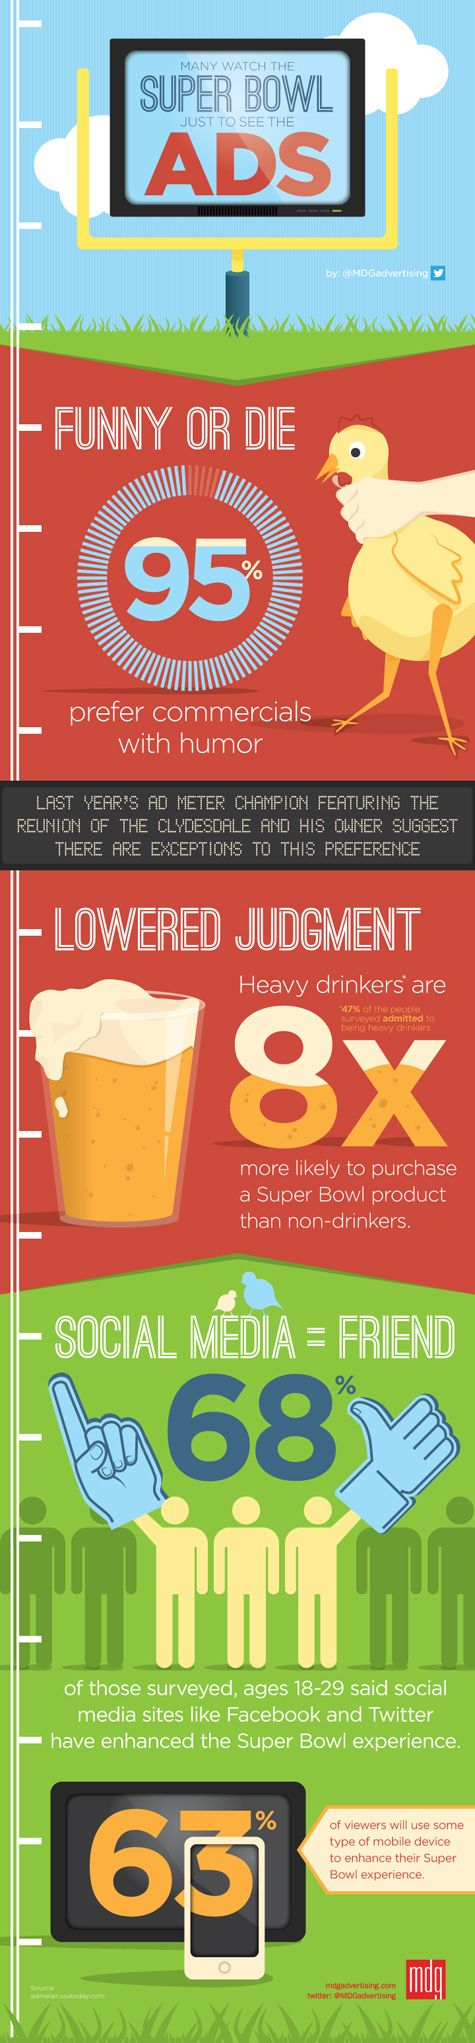 Super Bowl Ads Score More Fans Than the Game #Infographic